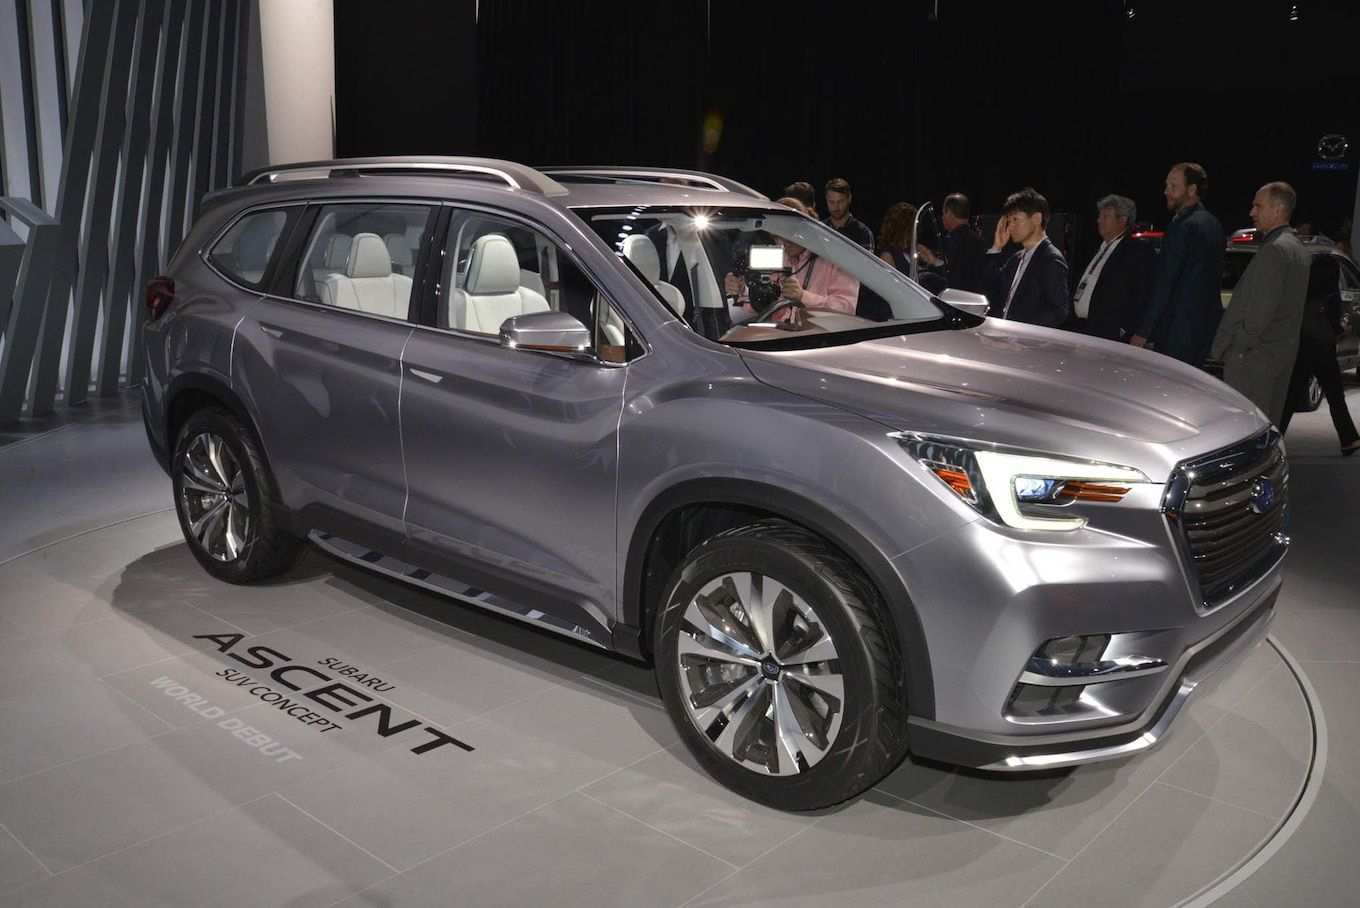 42 New 2020 Subaru Ascent Dimensions Research New with 2020 Subaru Ascent Dimensions